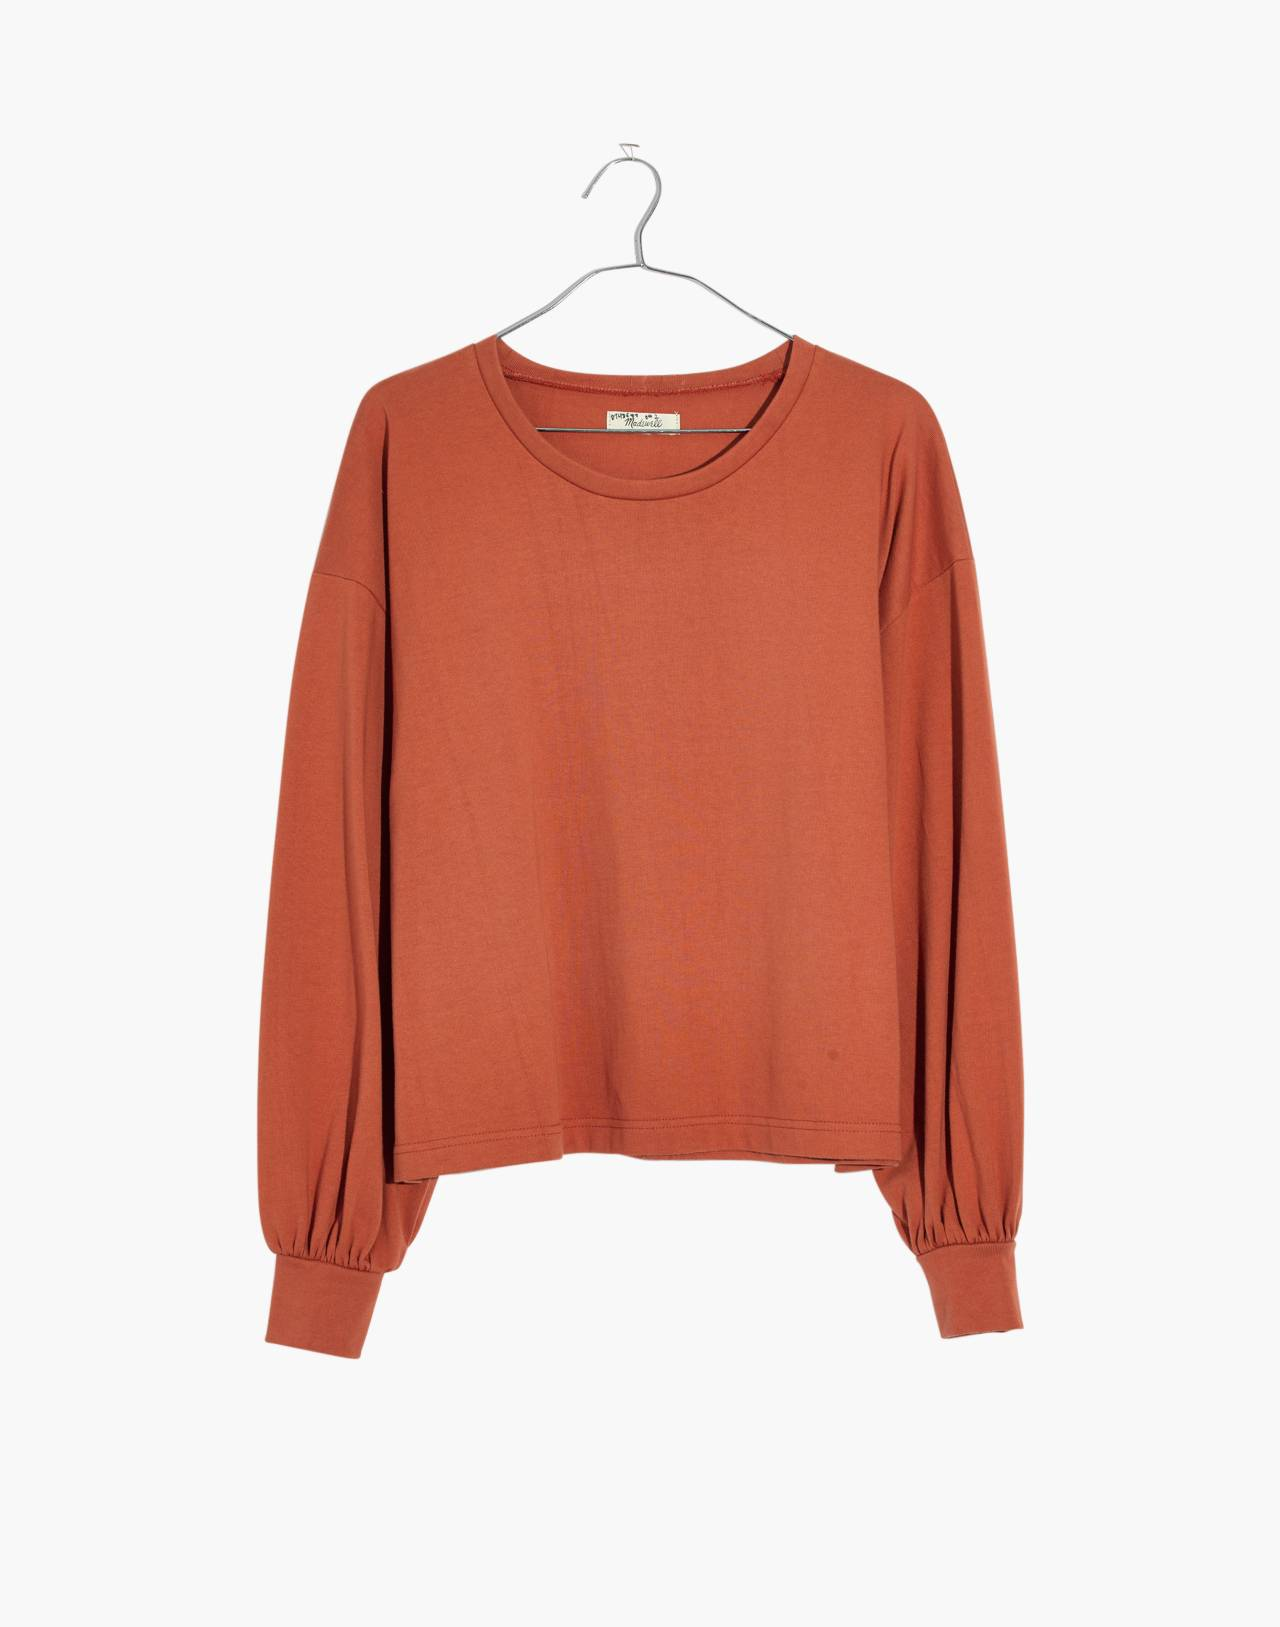 Chord Bubble-Sleeve Top in afterglow red image 4